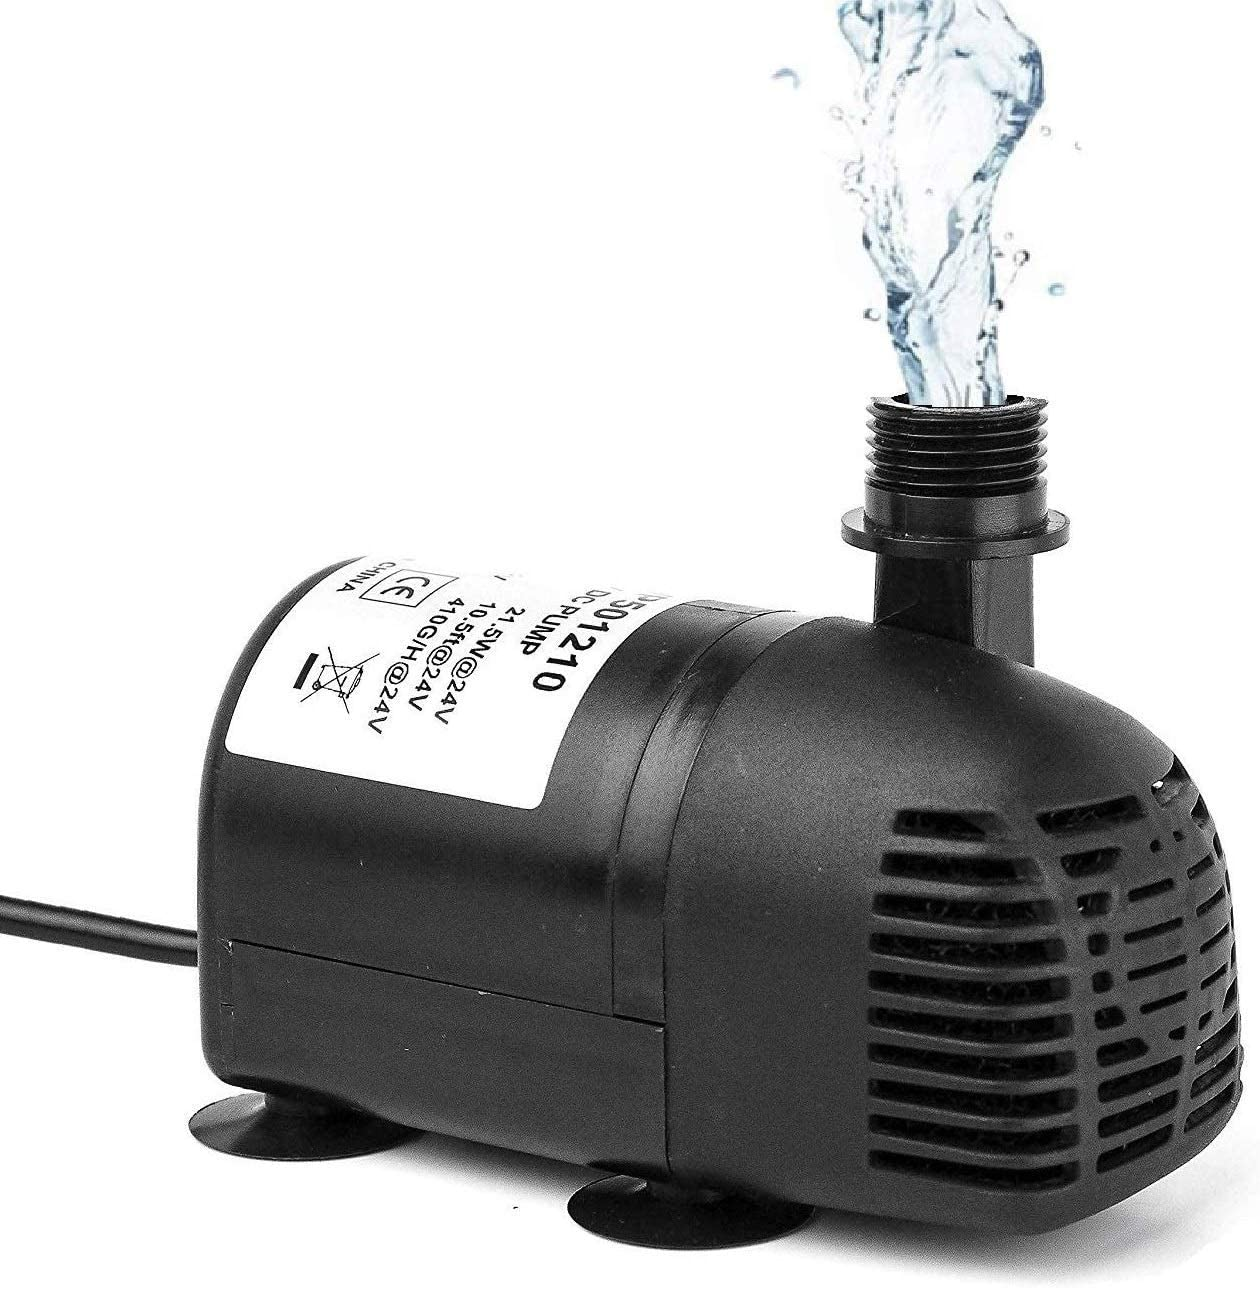 12V - 24V DC Brushless Submersible Water 1 year Price reduction warranty Solar 410GPH for Pump